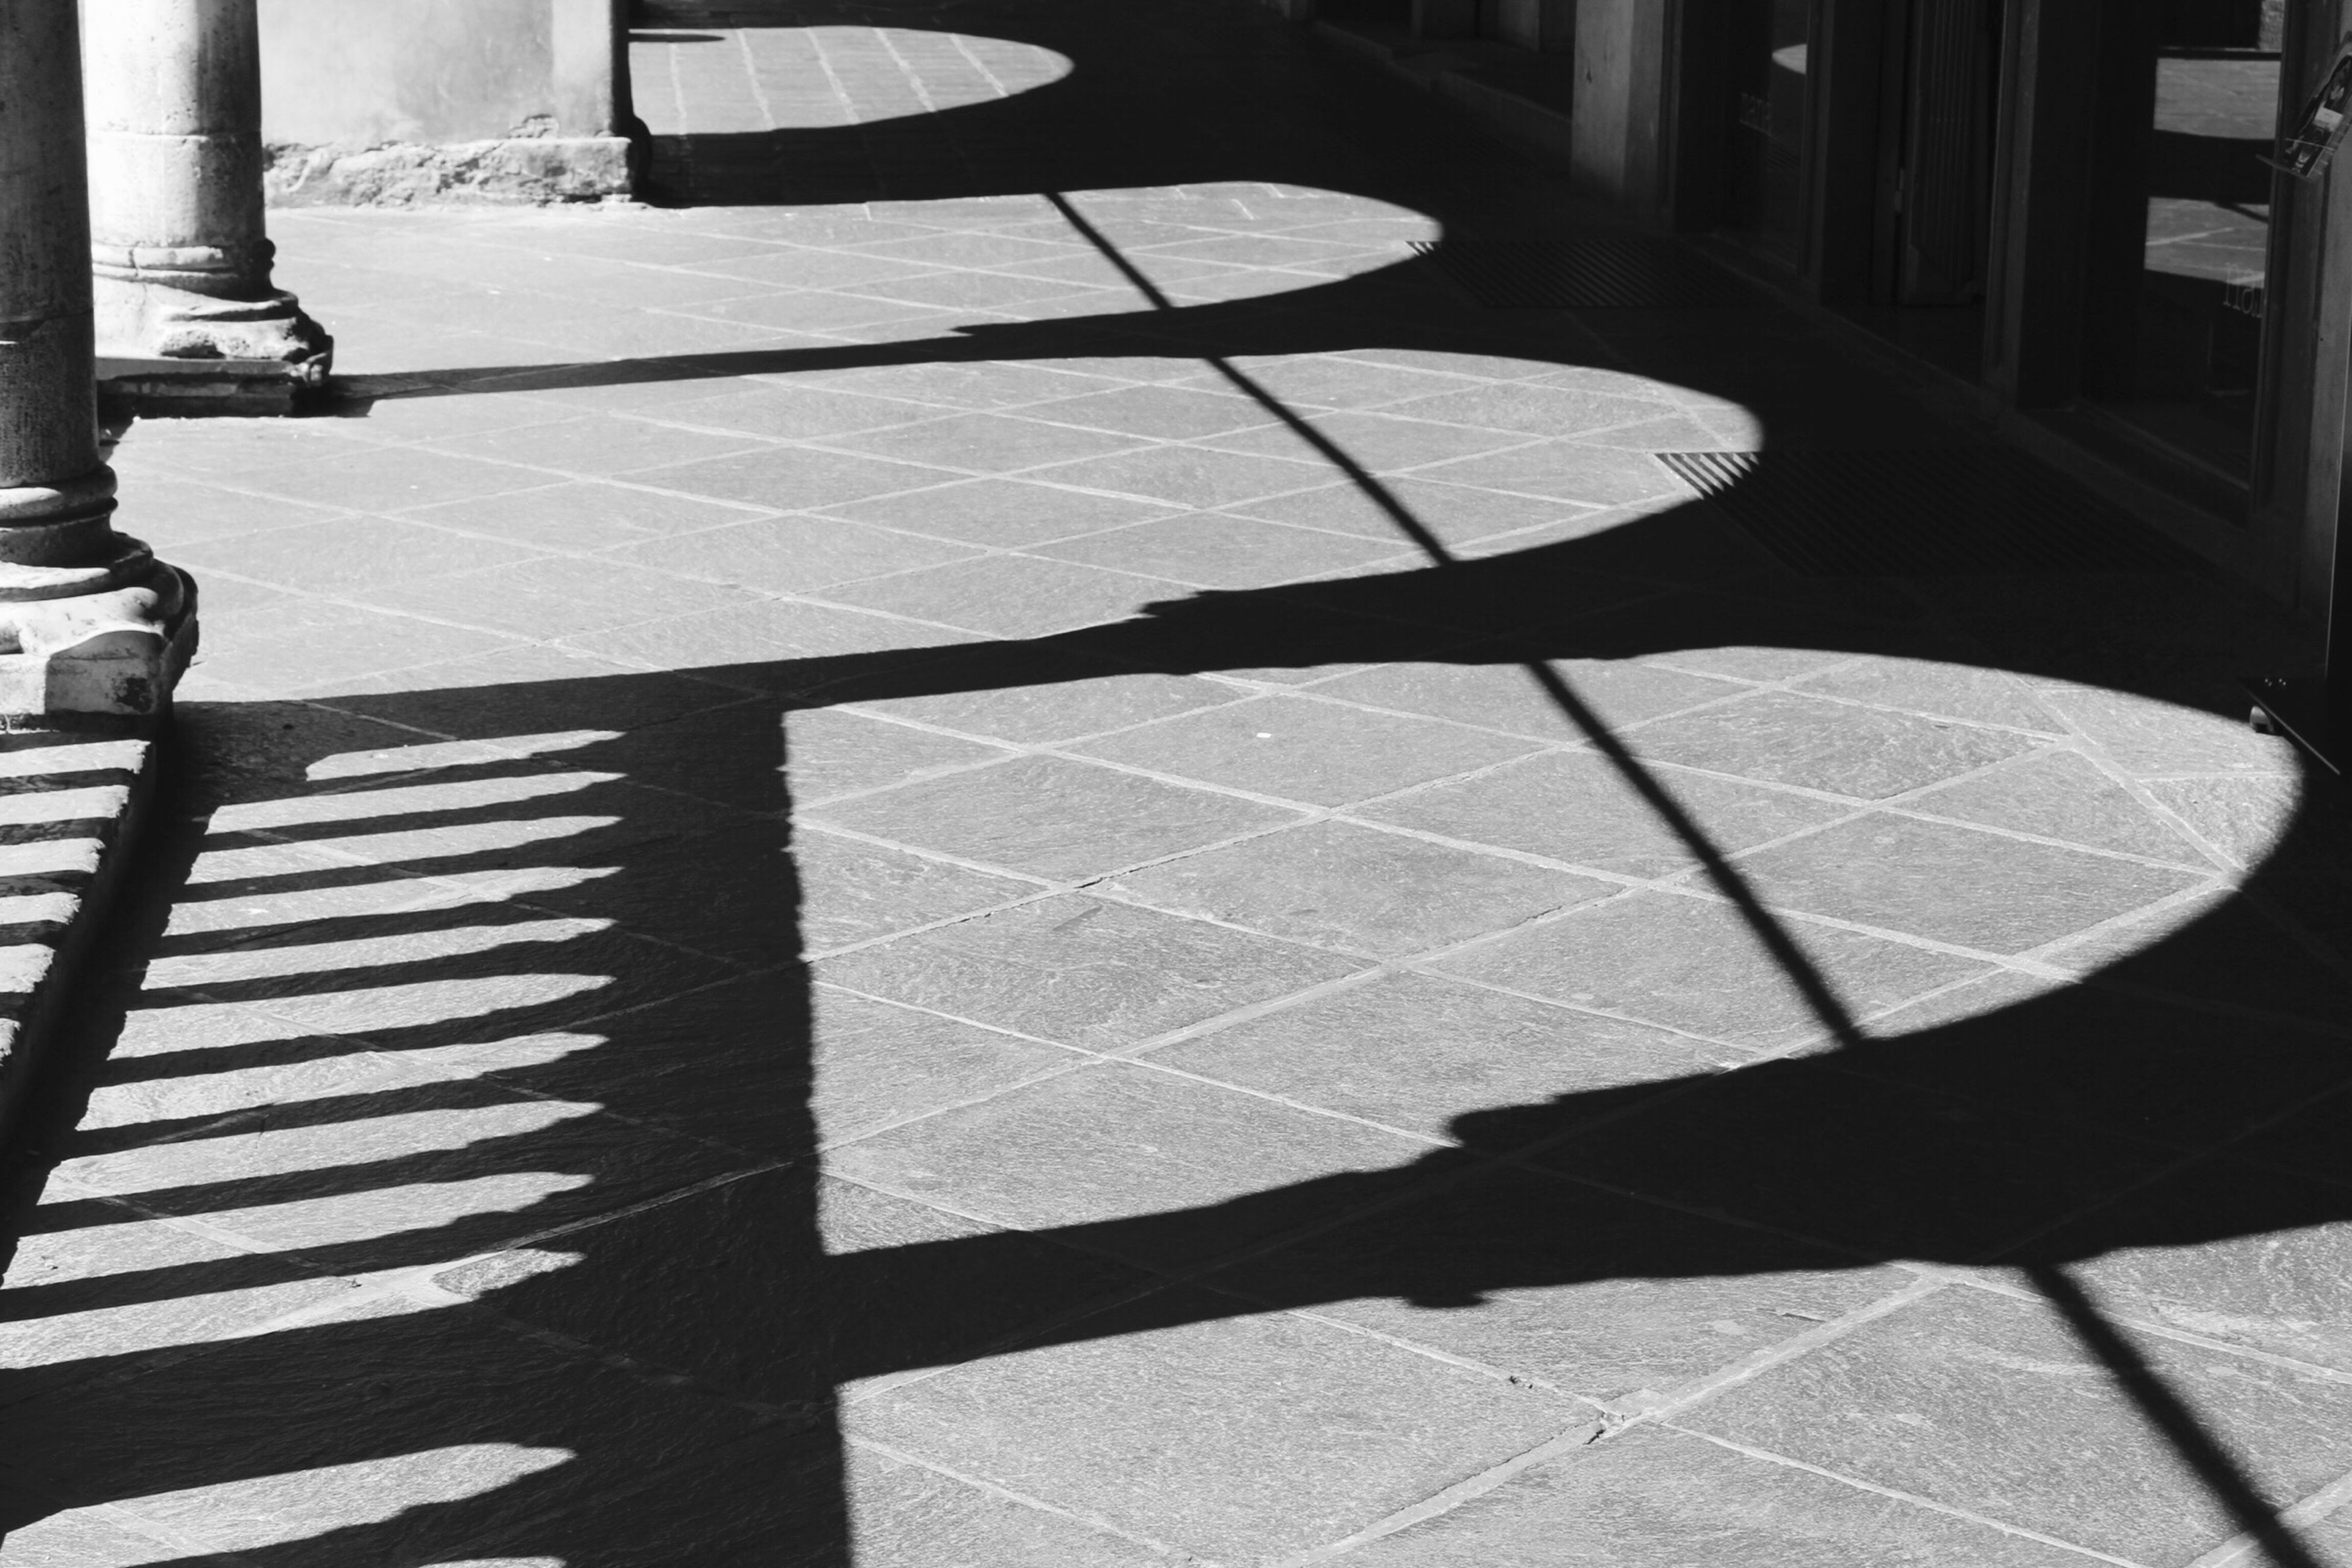 Black Shadow Sunlight Street Real People Outdoors Low Section Day One Person Ombre Blackandwhite Photo Cm Architecture Belluno Biancoenero Arco Old Fashion Fotografia -CM